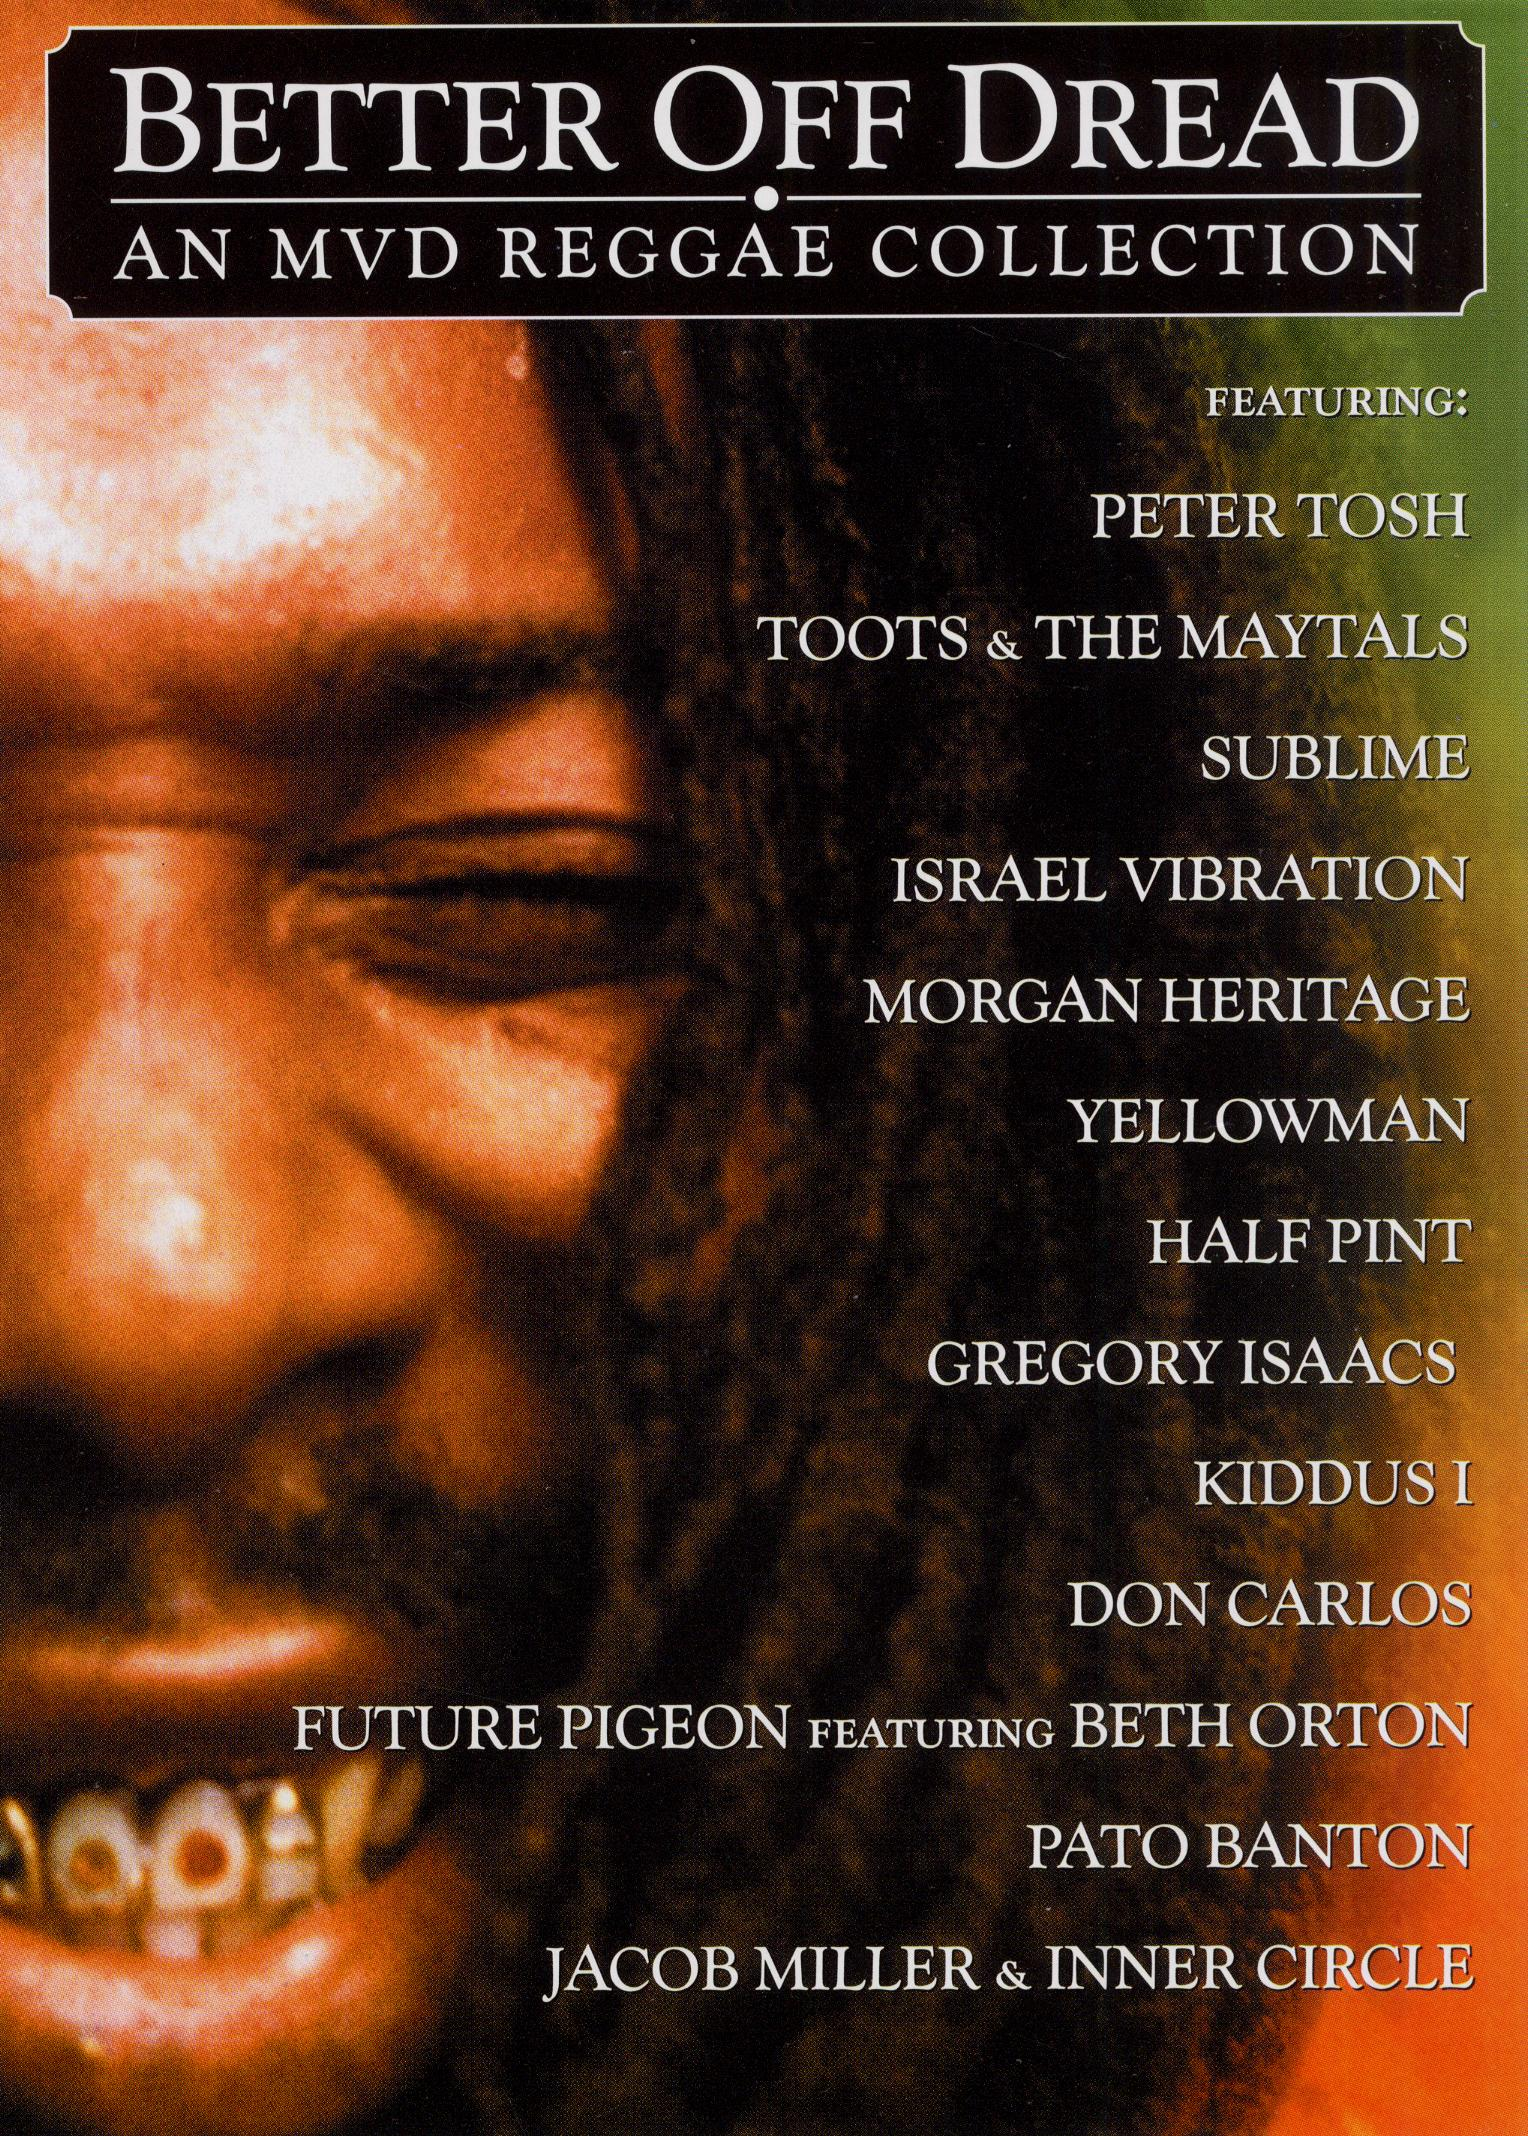 Better Off Dread: An MVD Reggae Collection